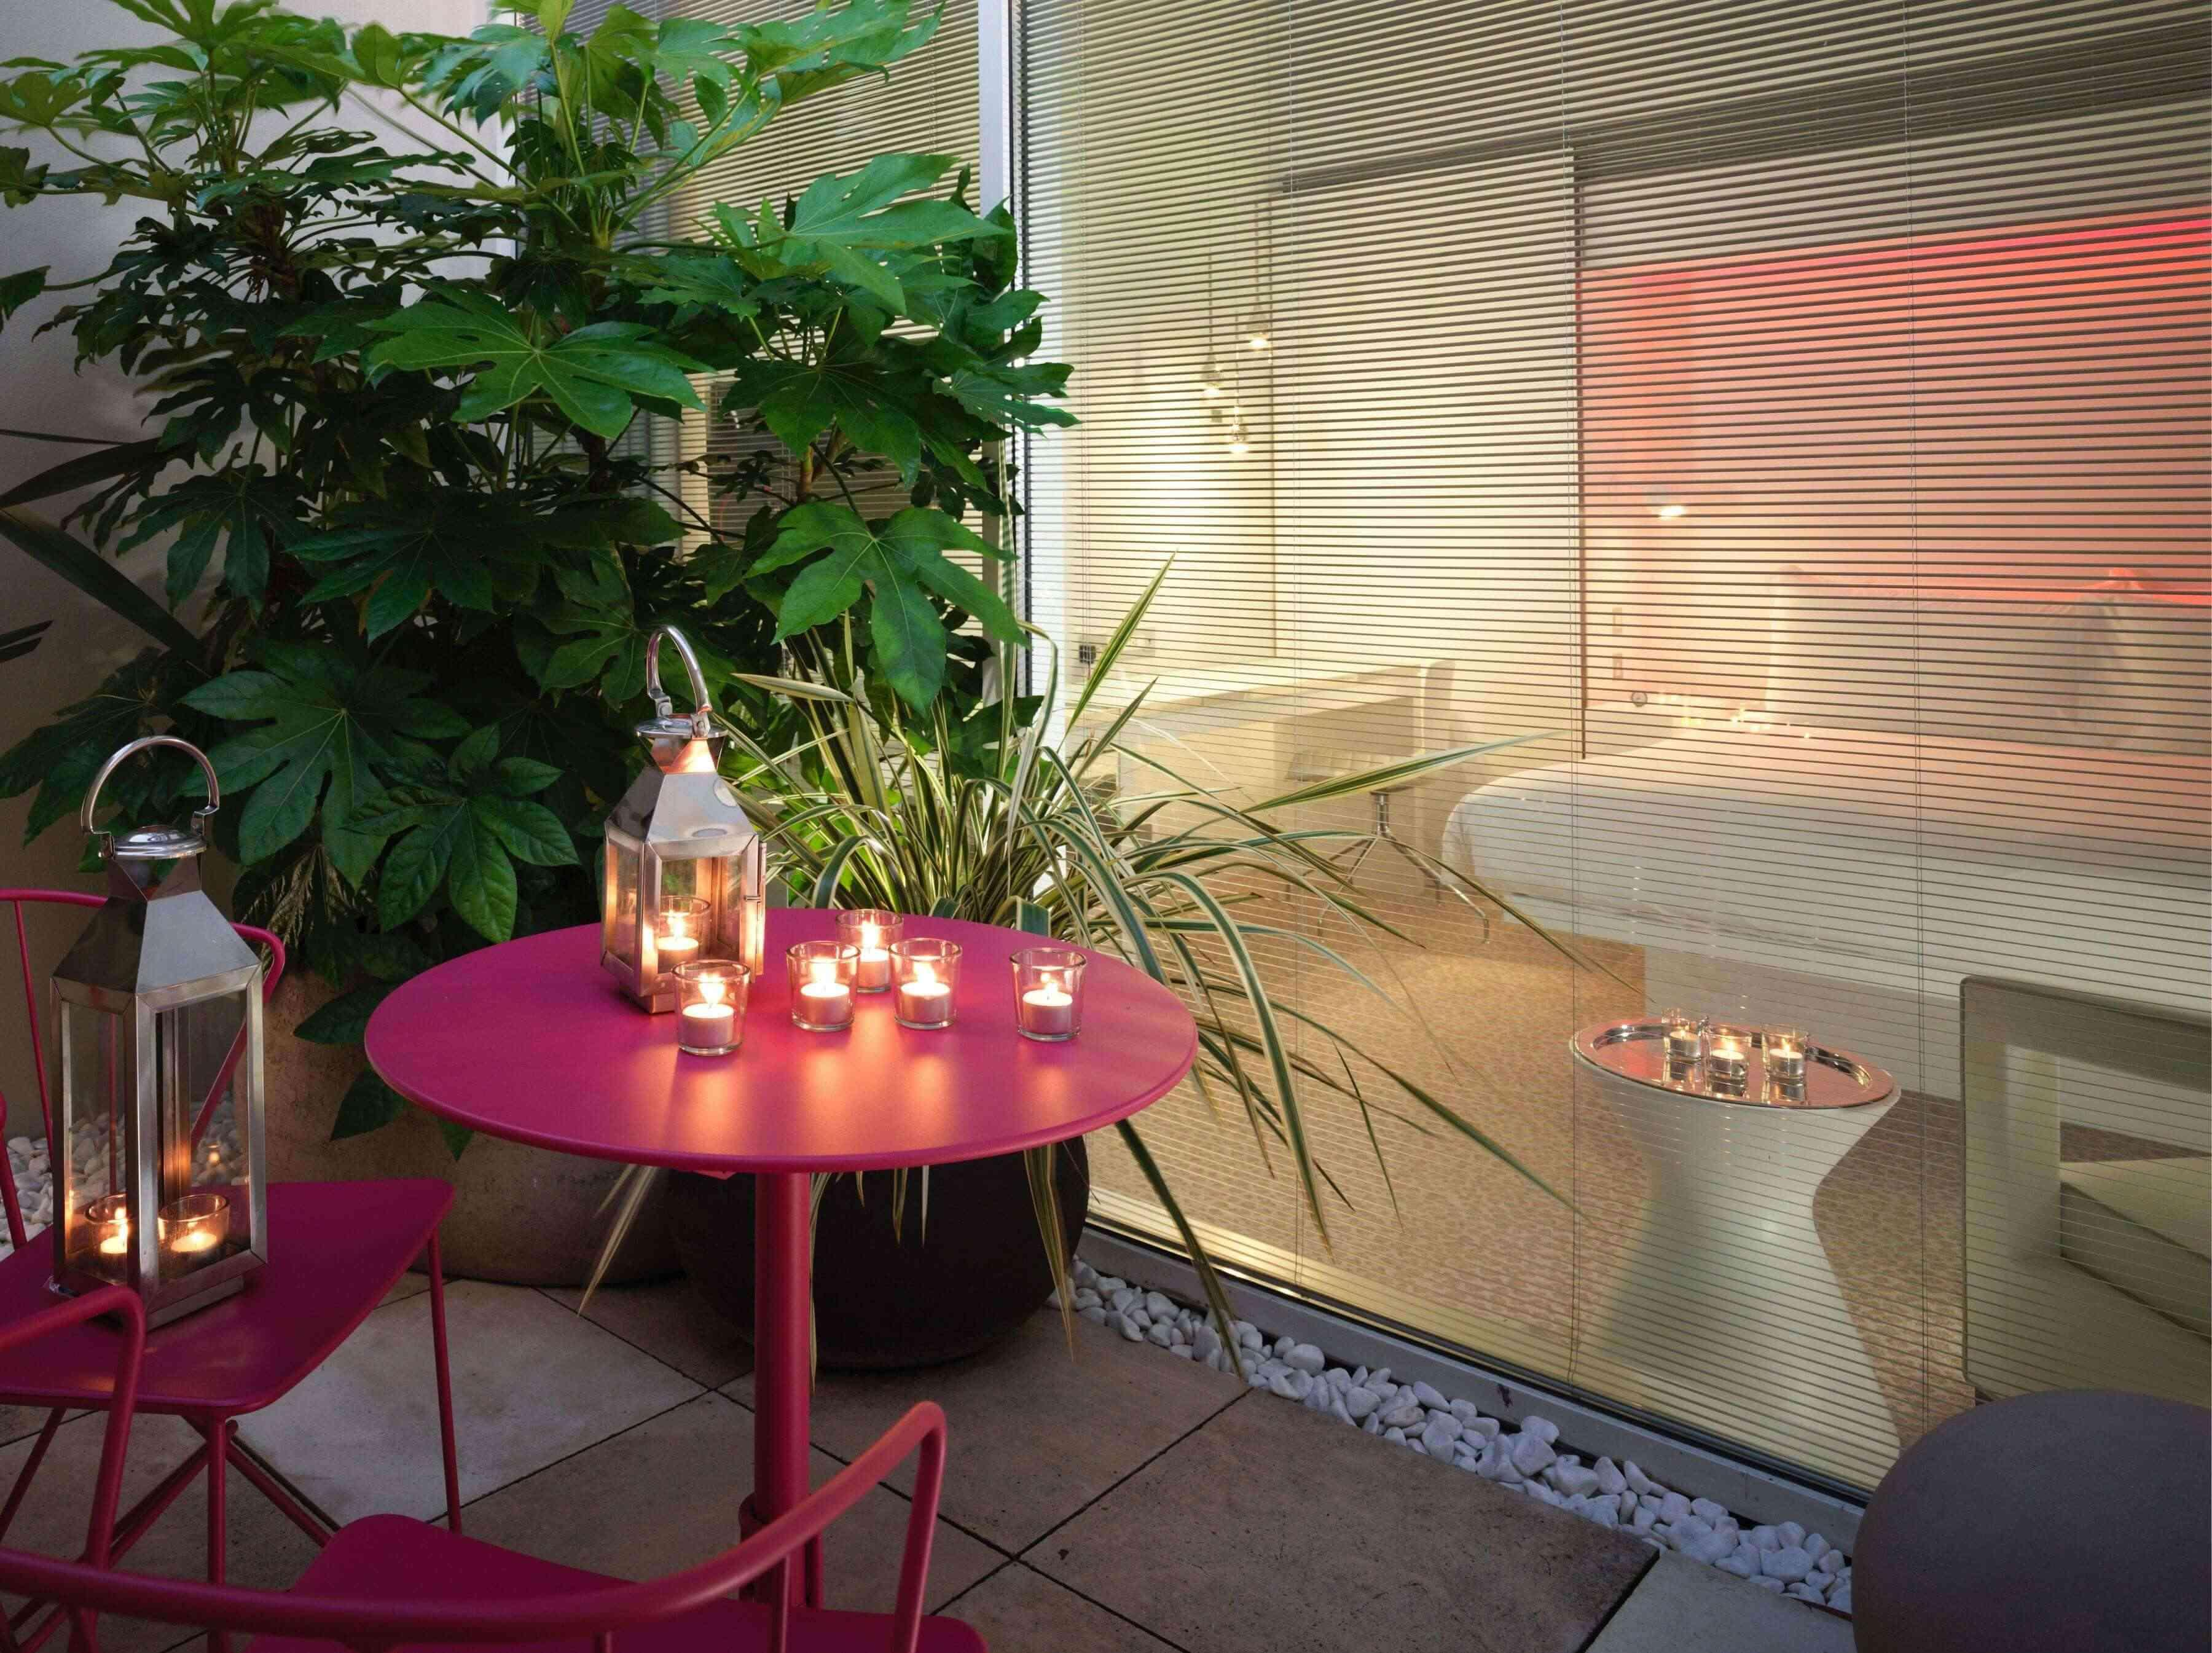 Bright pink table with candles next to a plant with a bedroom in the background